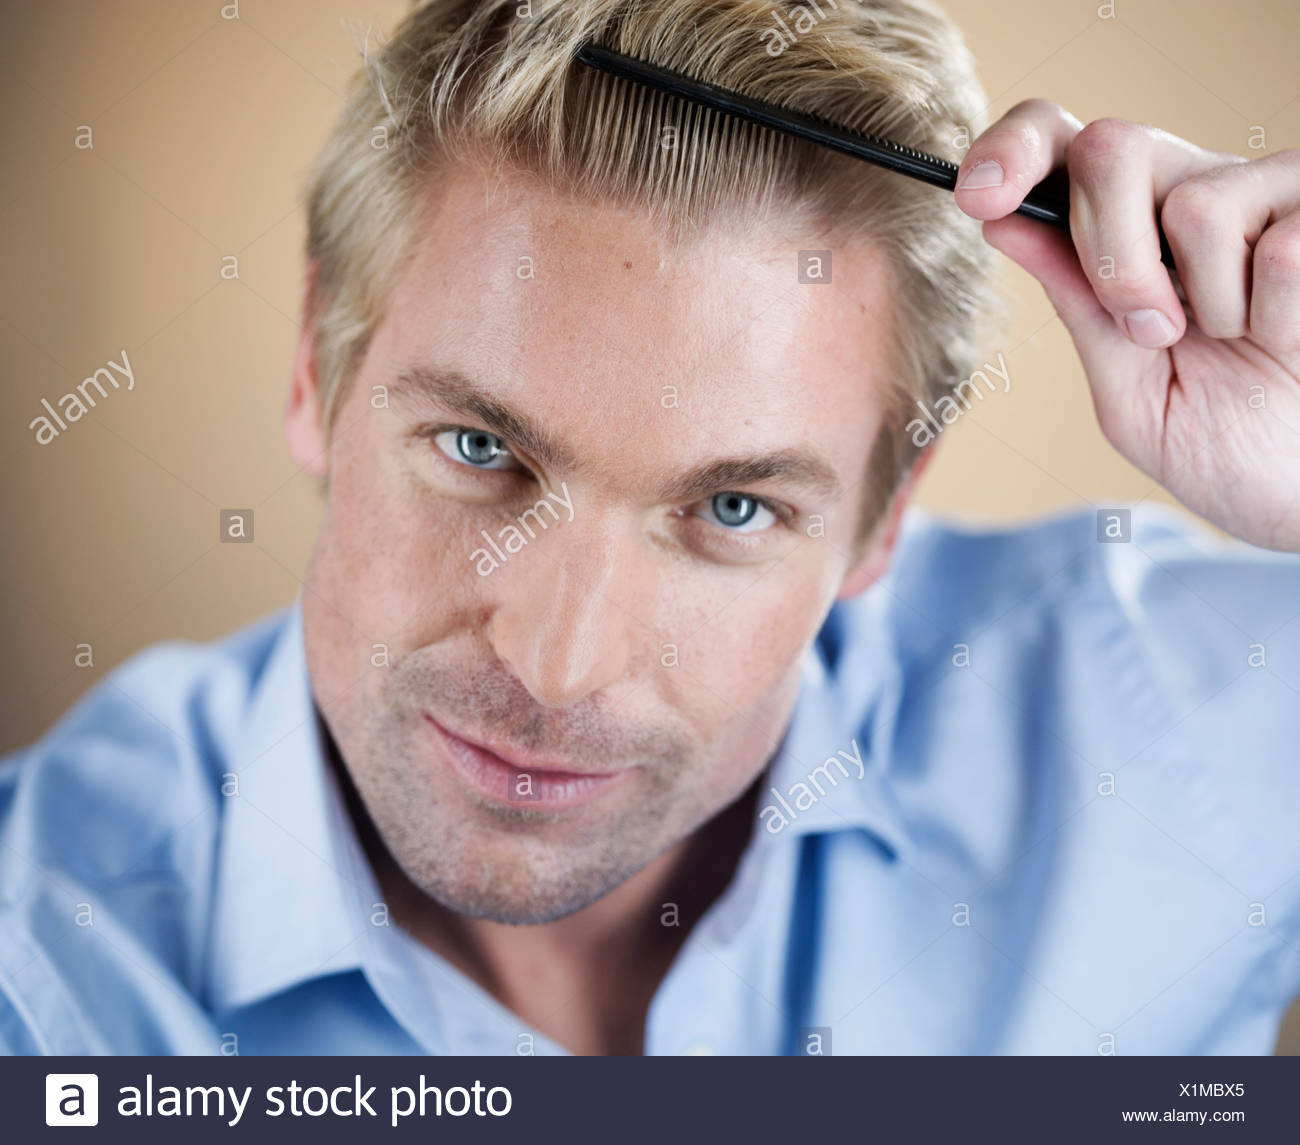 Combing Stock Photos Combing Stock Images Alamy